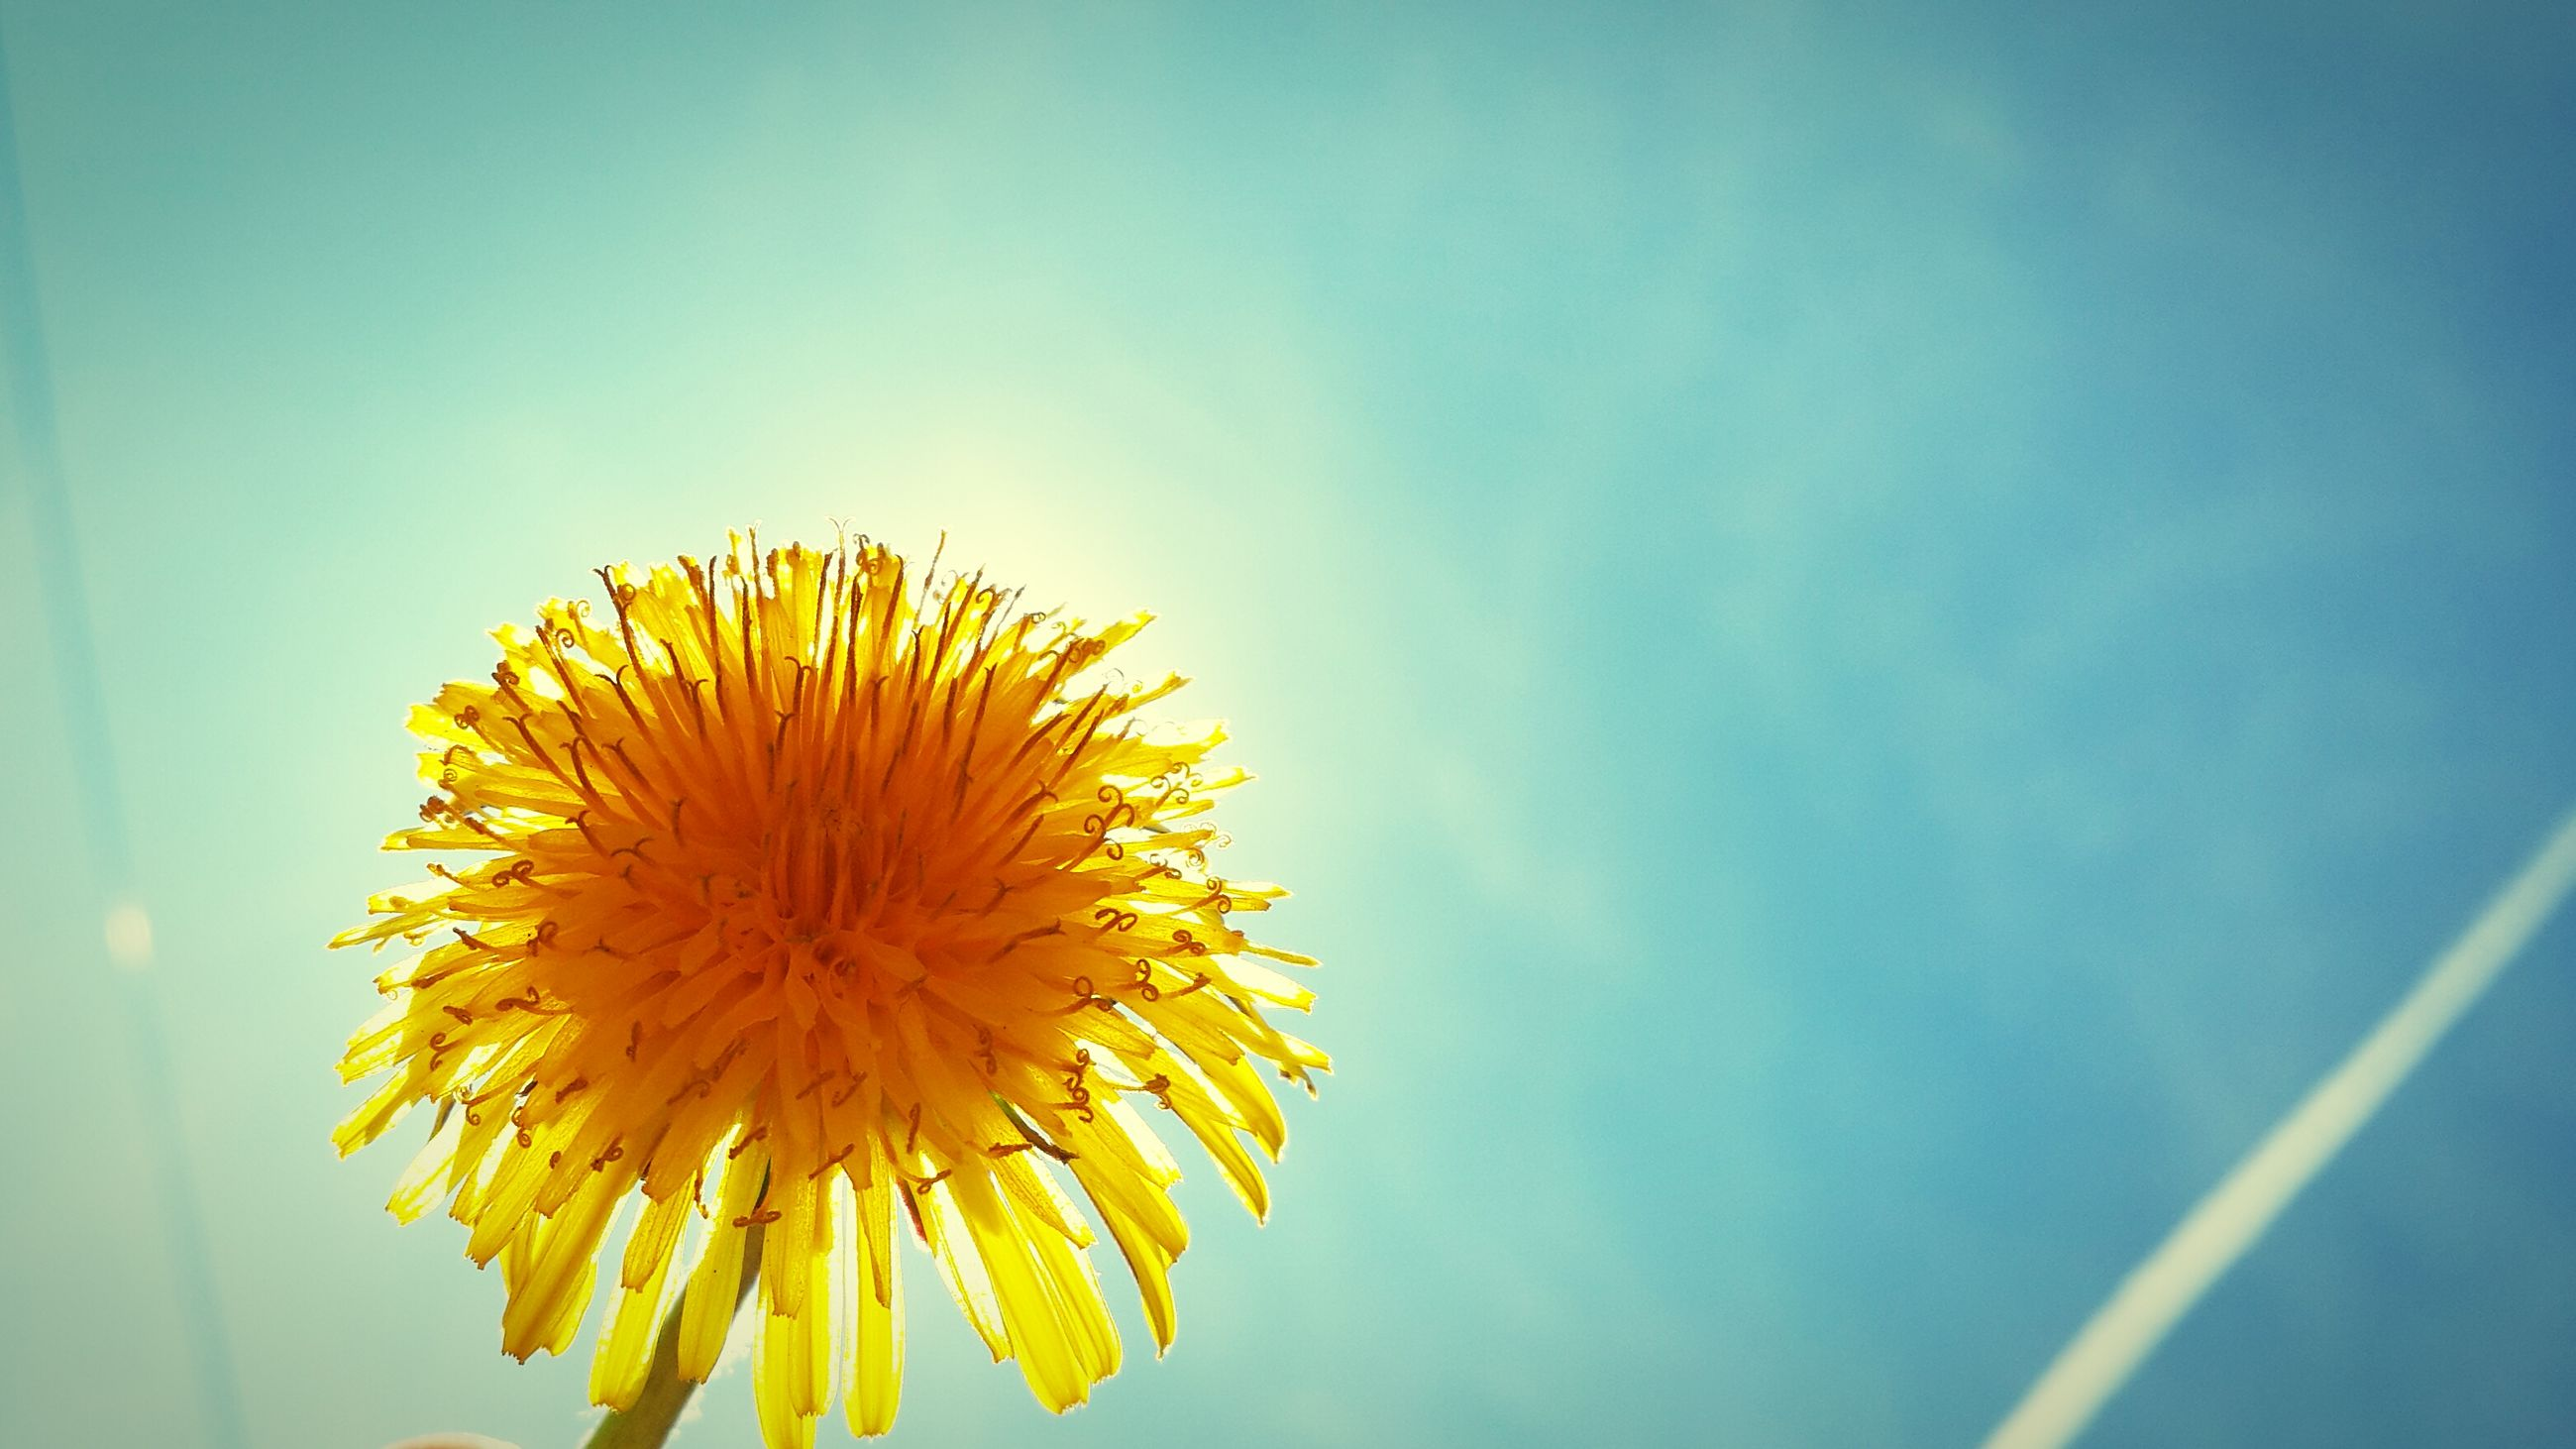 flower, yellow, freshness, fragility, flower head, petal, single flower, sunflower, growth, beauty in nature, pollen, nature, close-up, blooming, in bloom, dandelion, plant, sky, stem, blossom